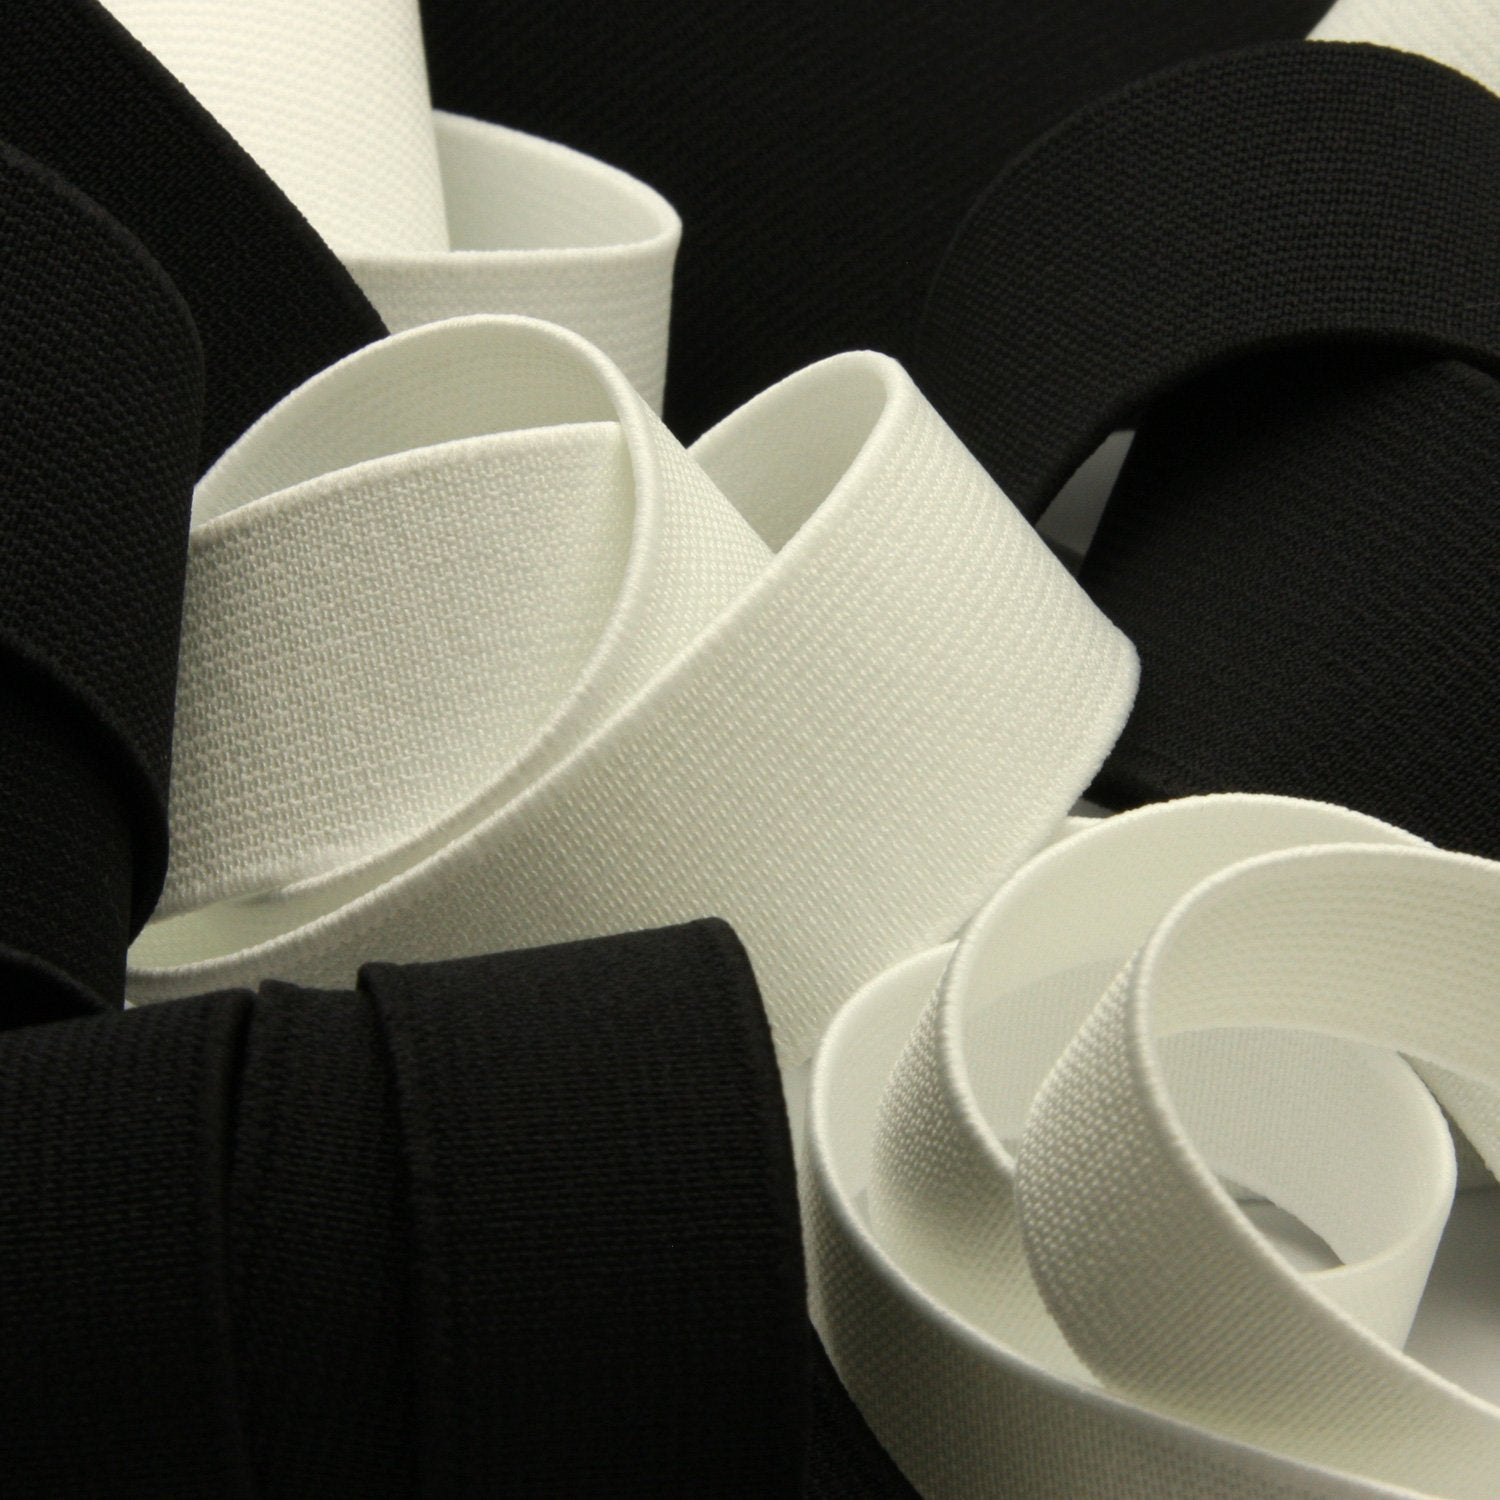 FUJIYAMA RIBBON [Wholesale] Soft Type Inside Belt 30mm 30 Meters Roll Off White